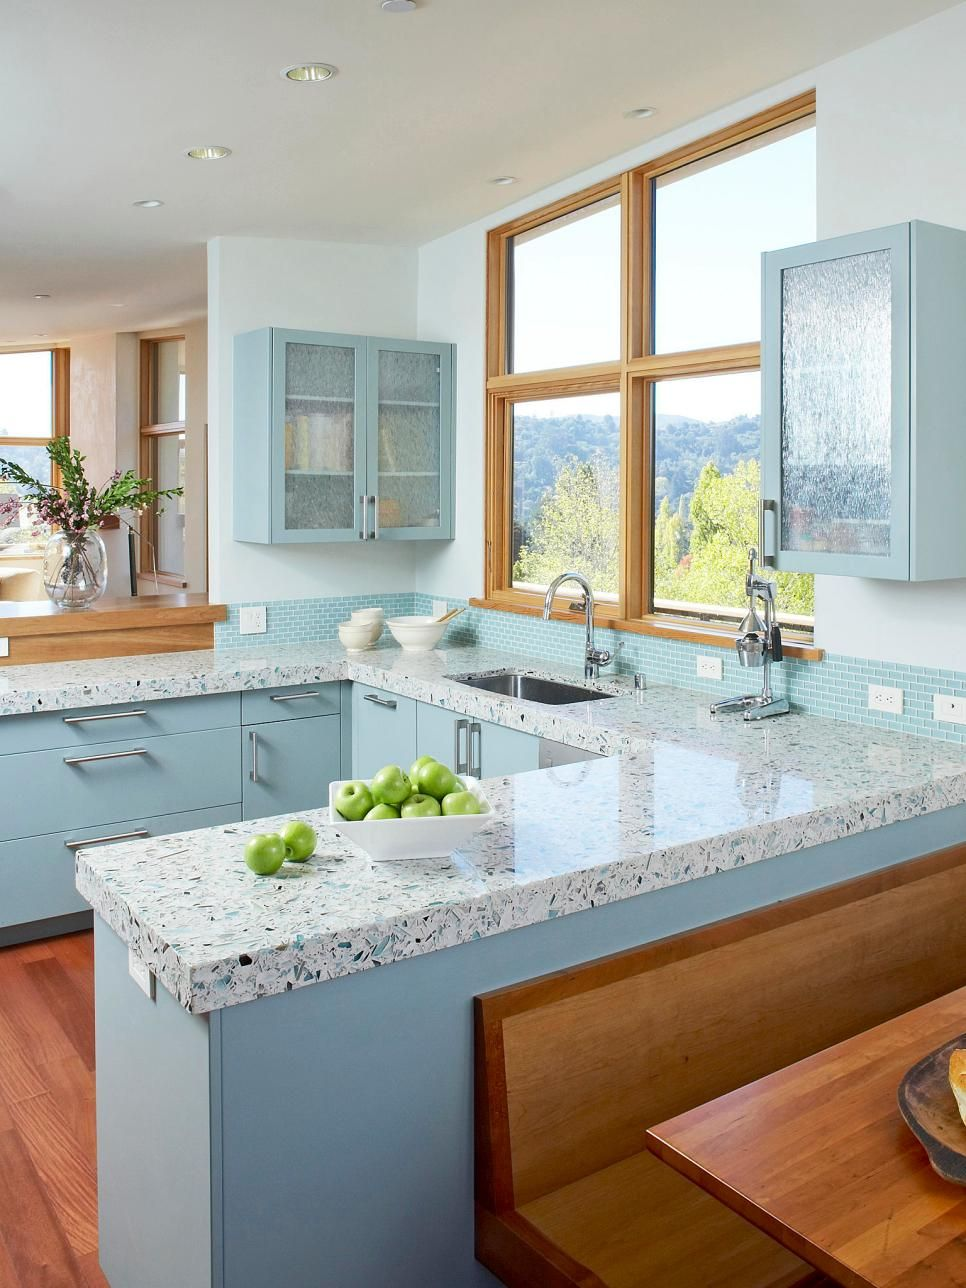 Choosing The Right Kitchen Countertop Can Be Tricky And Expensive